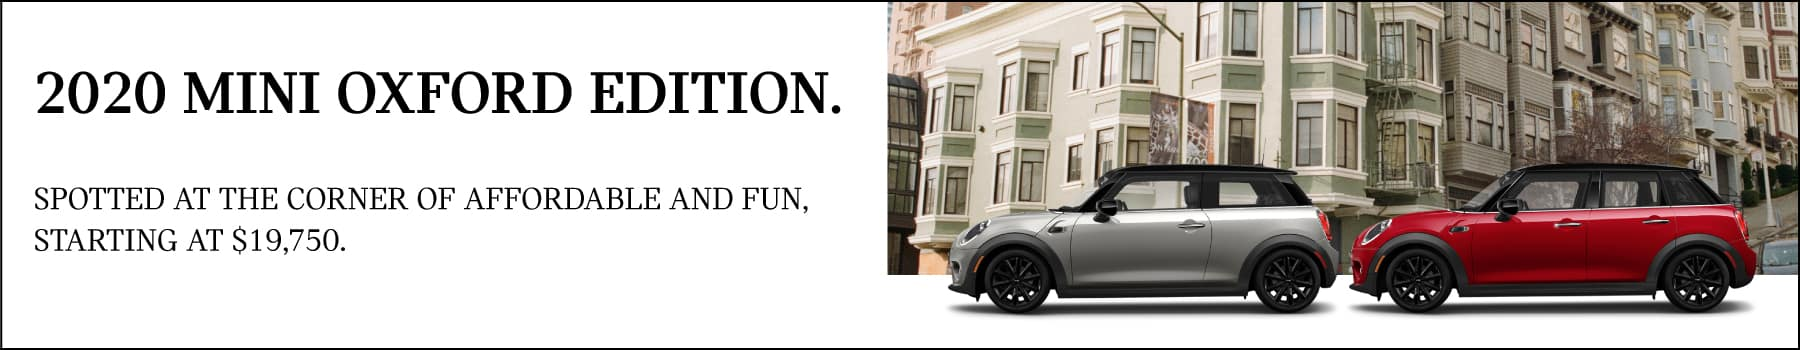 2020 MINI Oxford Edition. Stopped at the corner of affordable and fun. Starting at $19,750